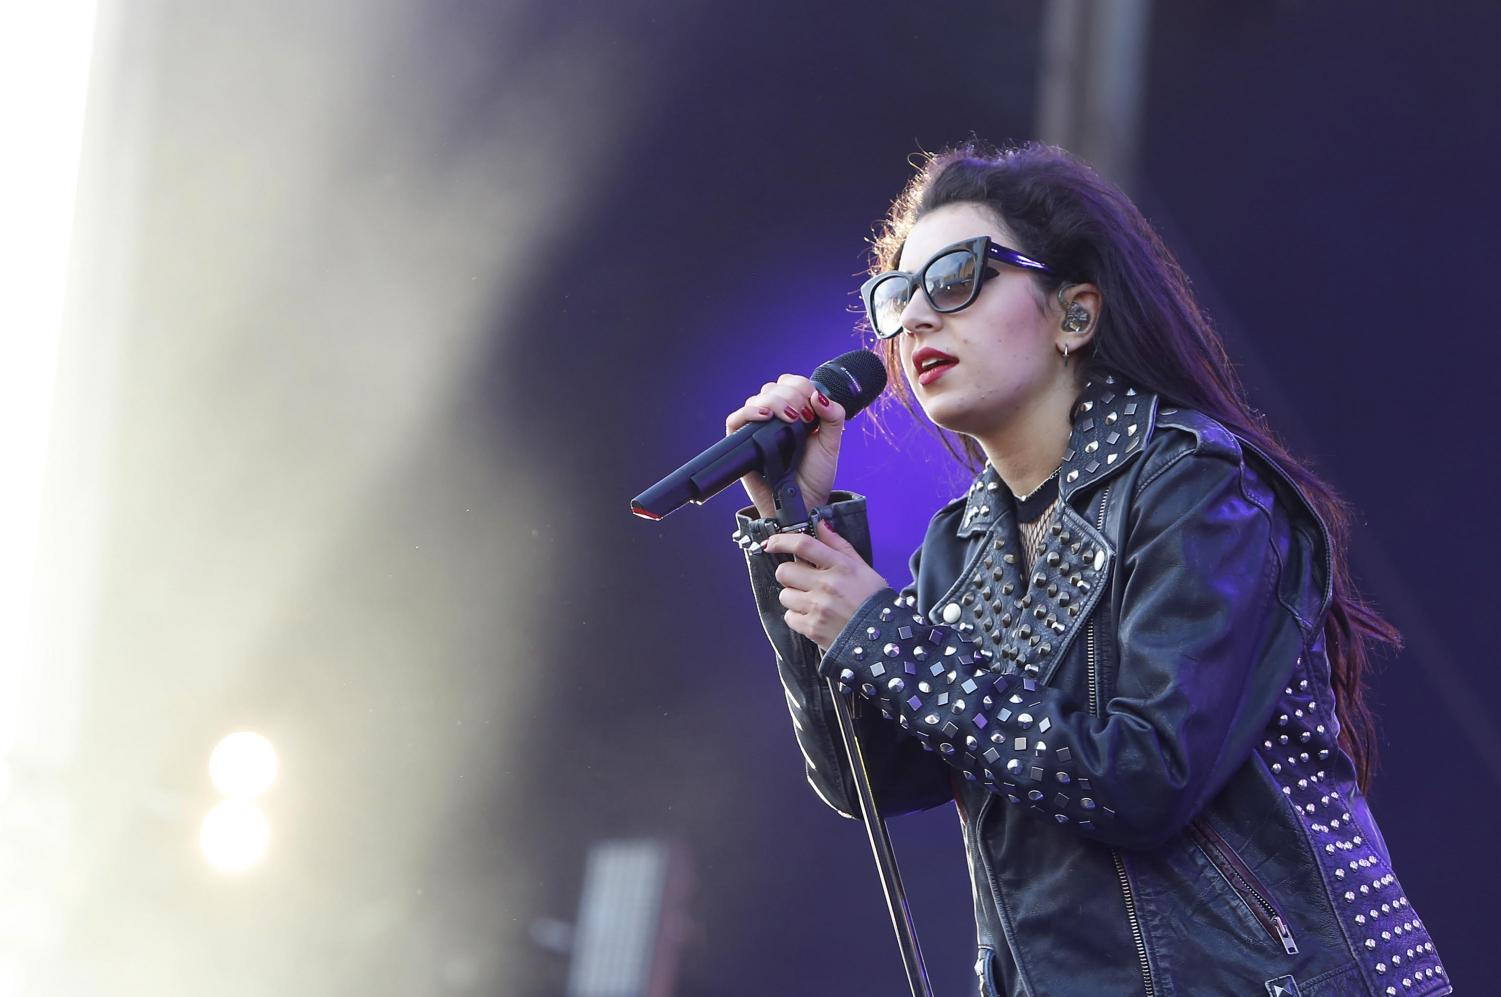 Charli XCX performs in 2015. Pitchfork Music Festival will feature Charli XCX and many other artists from a variety of genres.